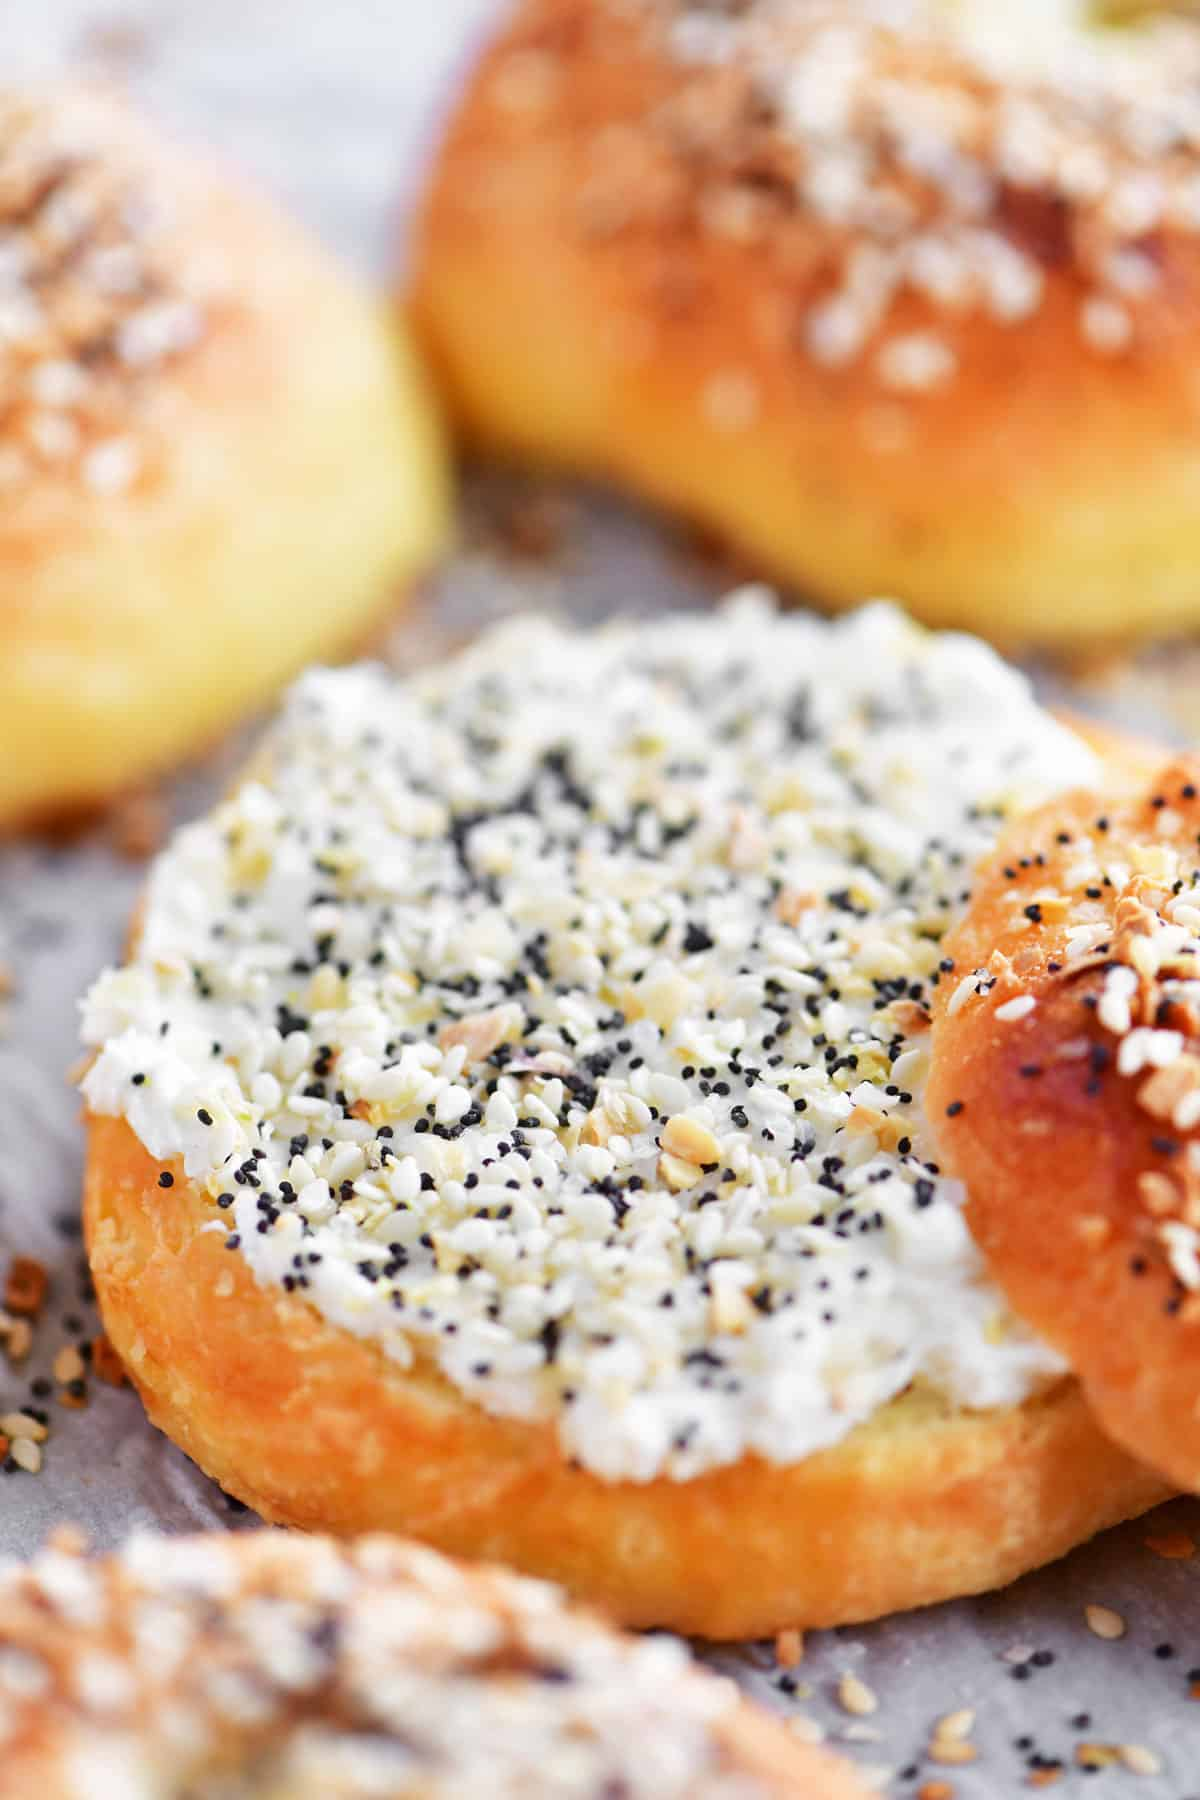 bagel with cream cheese and everything bagel seasoning